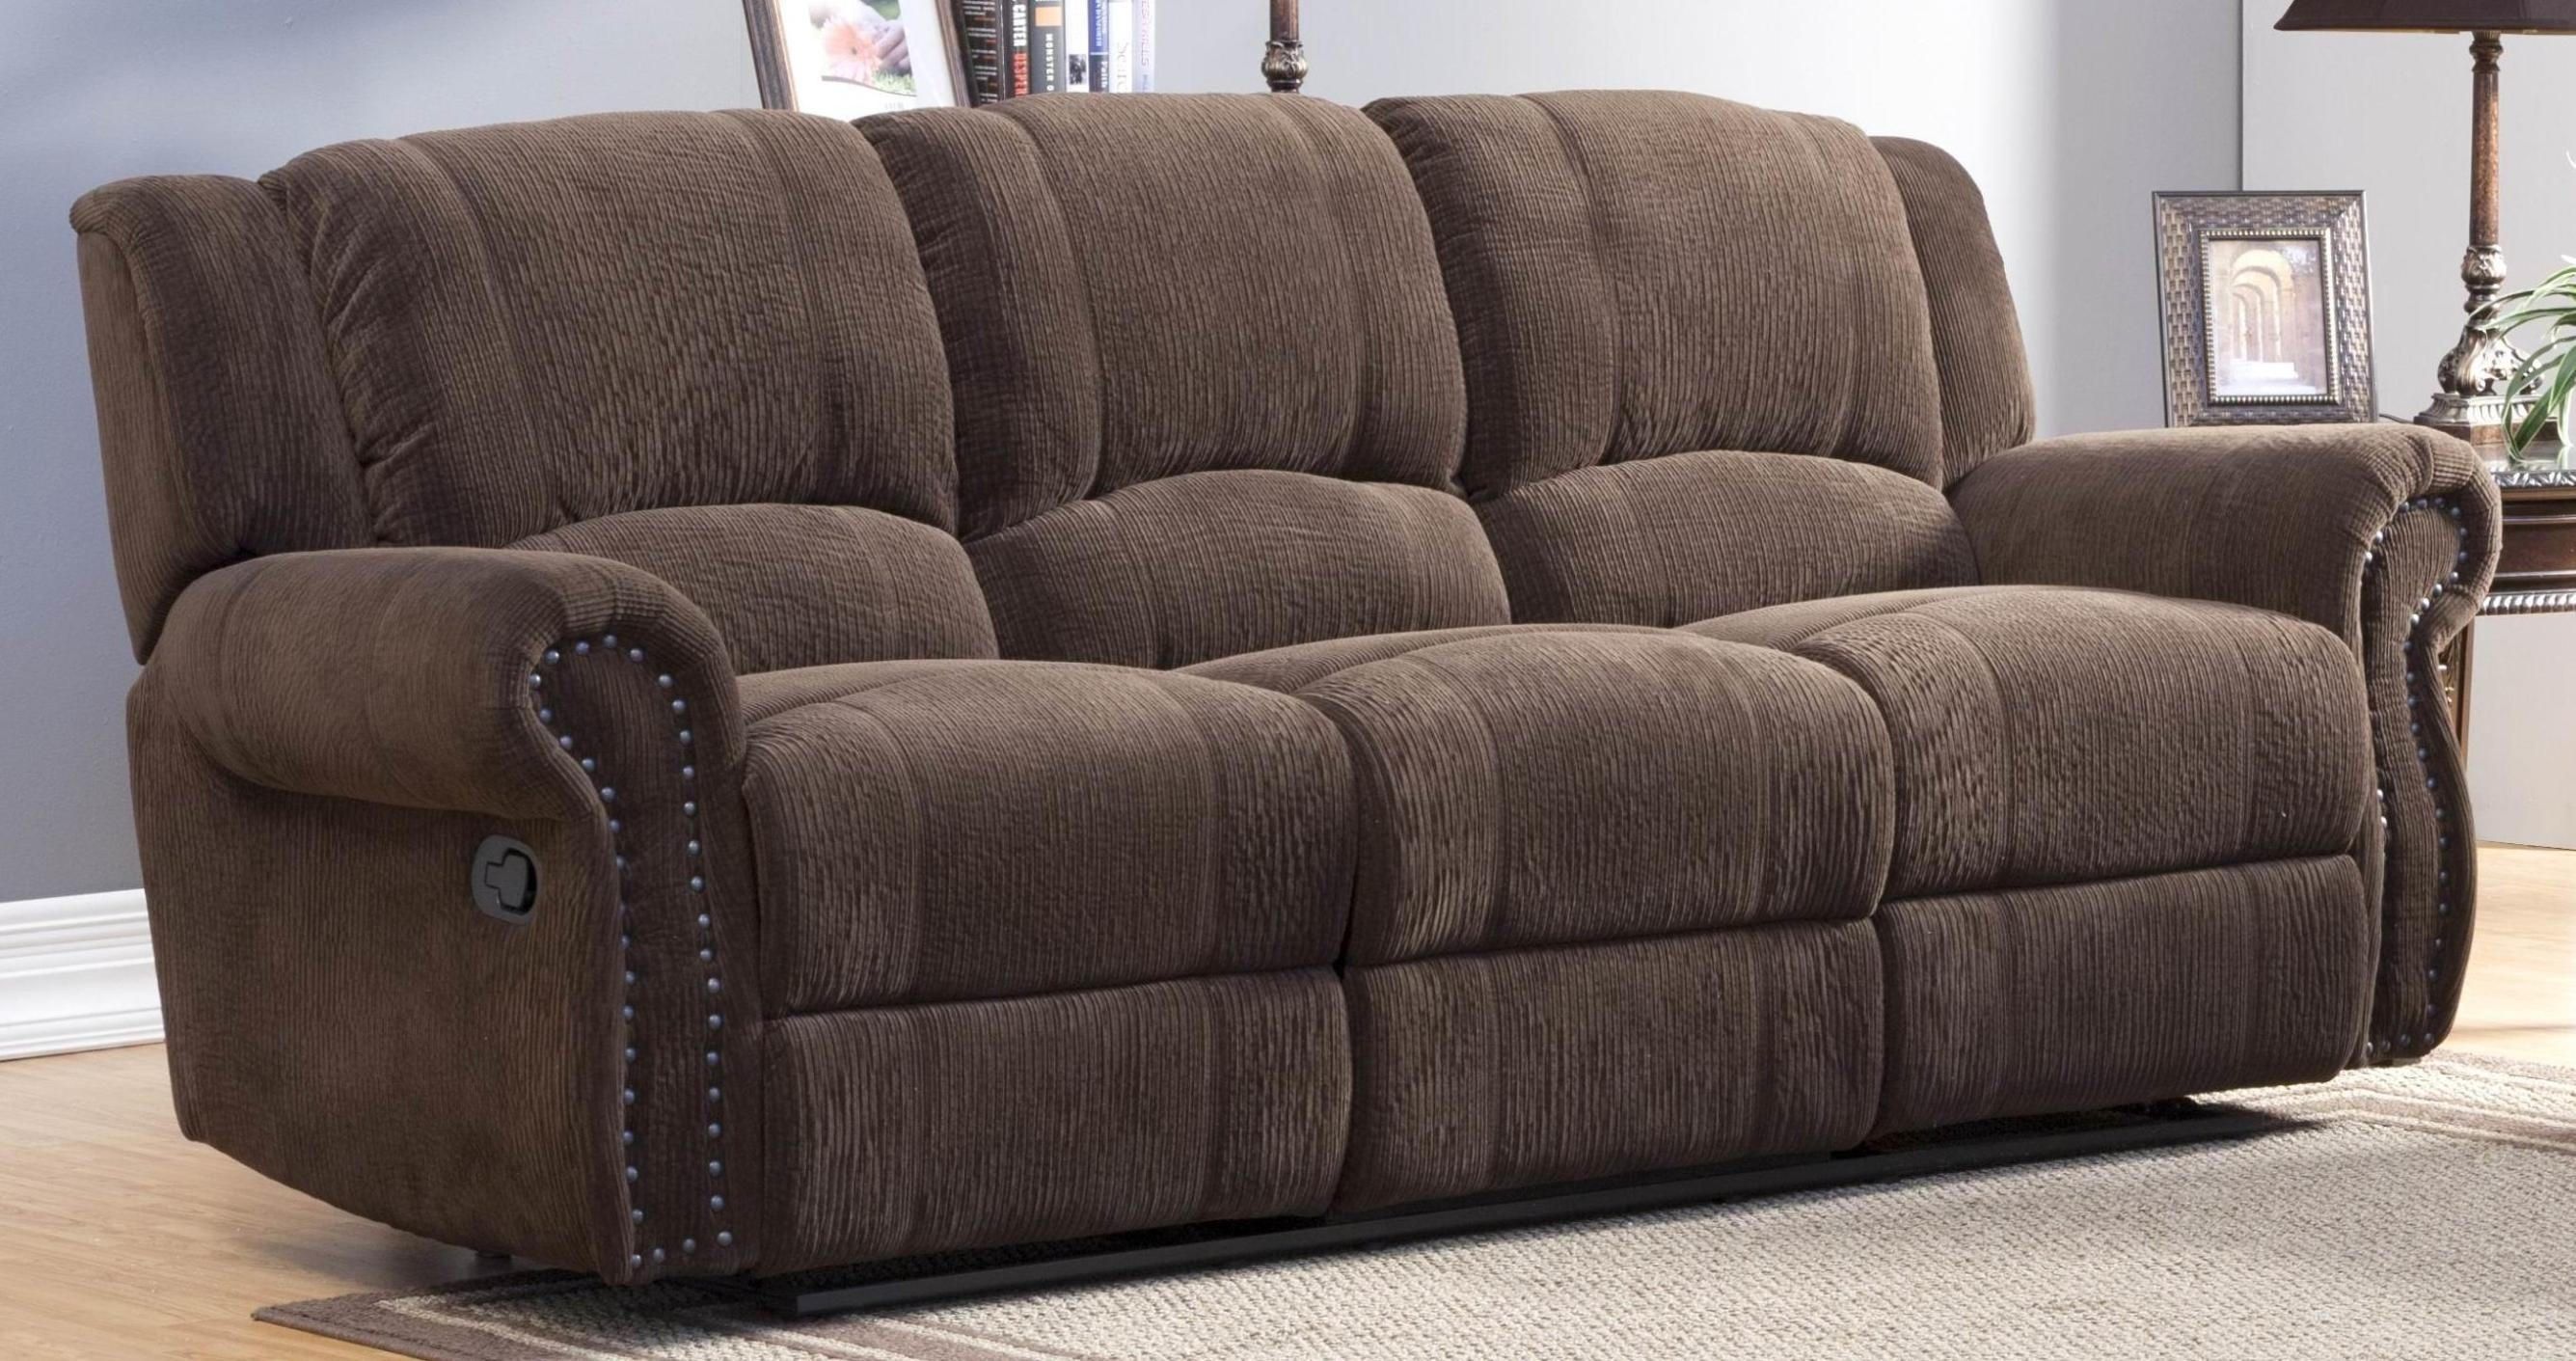 Reclining Sofa Covers | Tehranmix Decoration In Recliner Sofa Slipcovers (View 5 of 20)